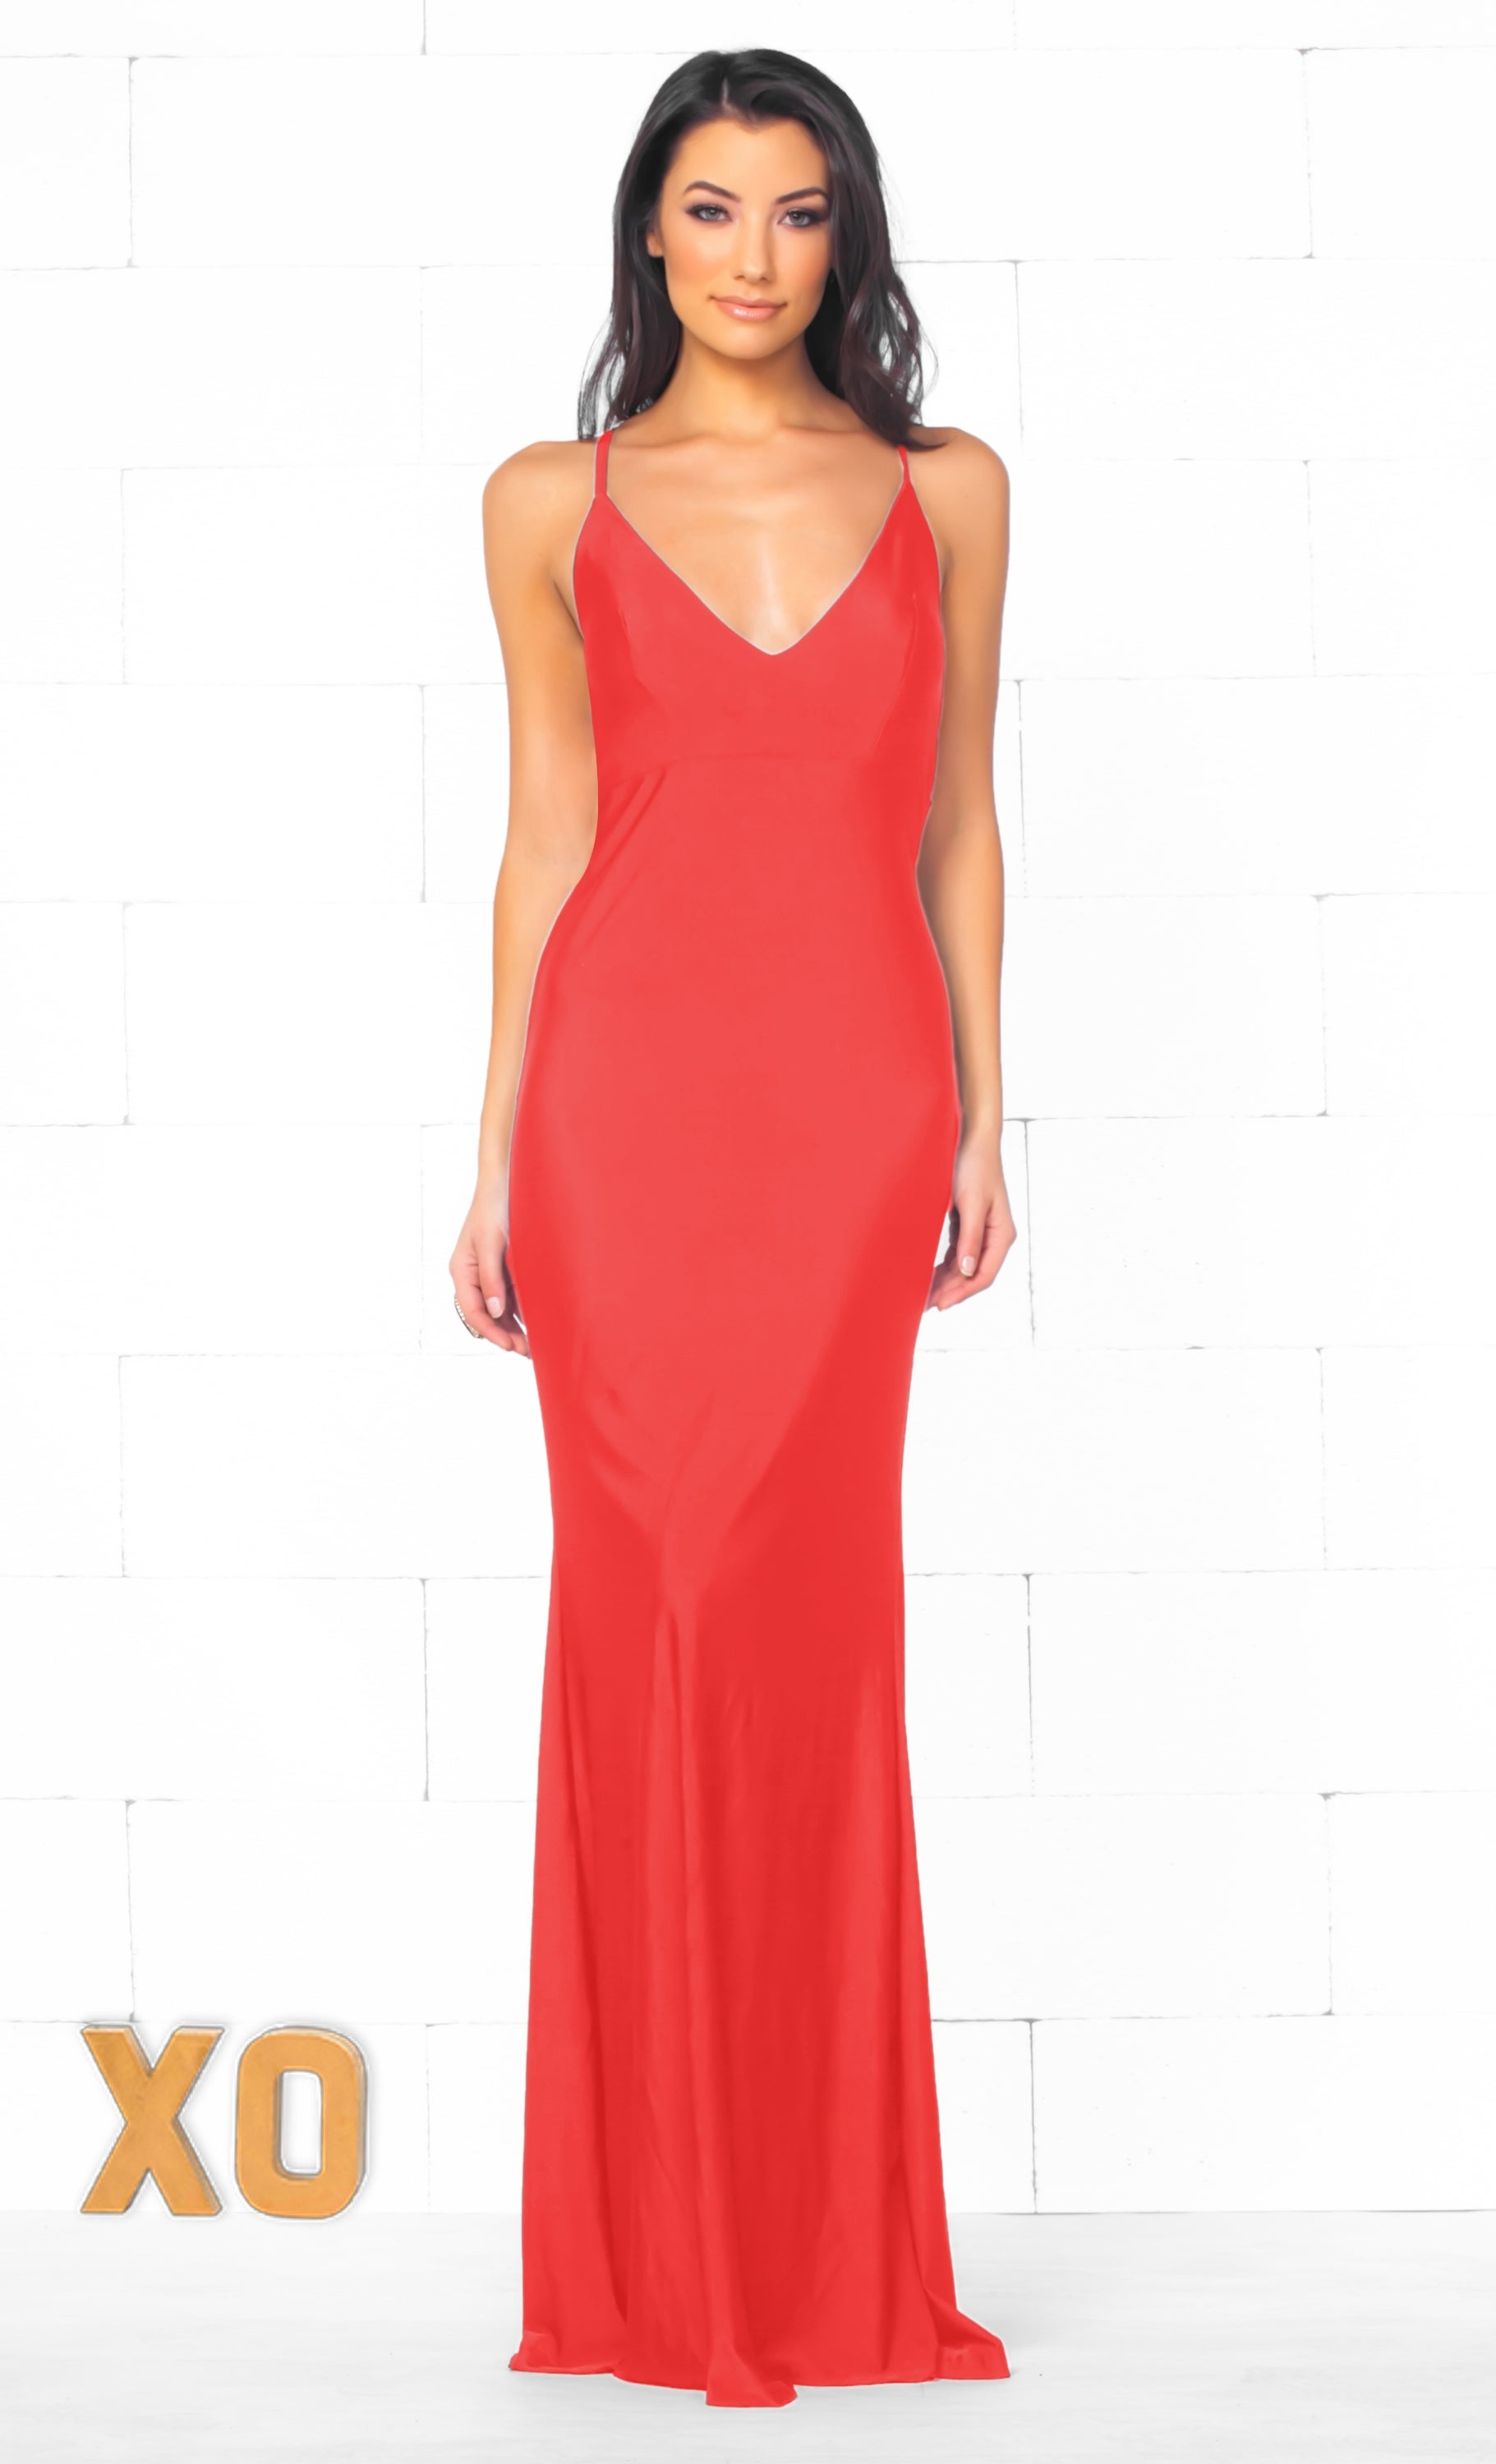 Indie XO In The Mood Coral Red Spaghetti Strap Plunge V Neck Backless Twist  Ruched Bodycon 0823a20e8